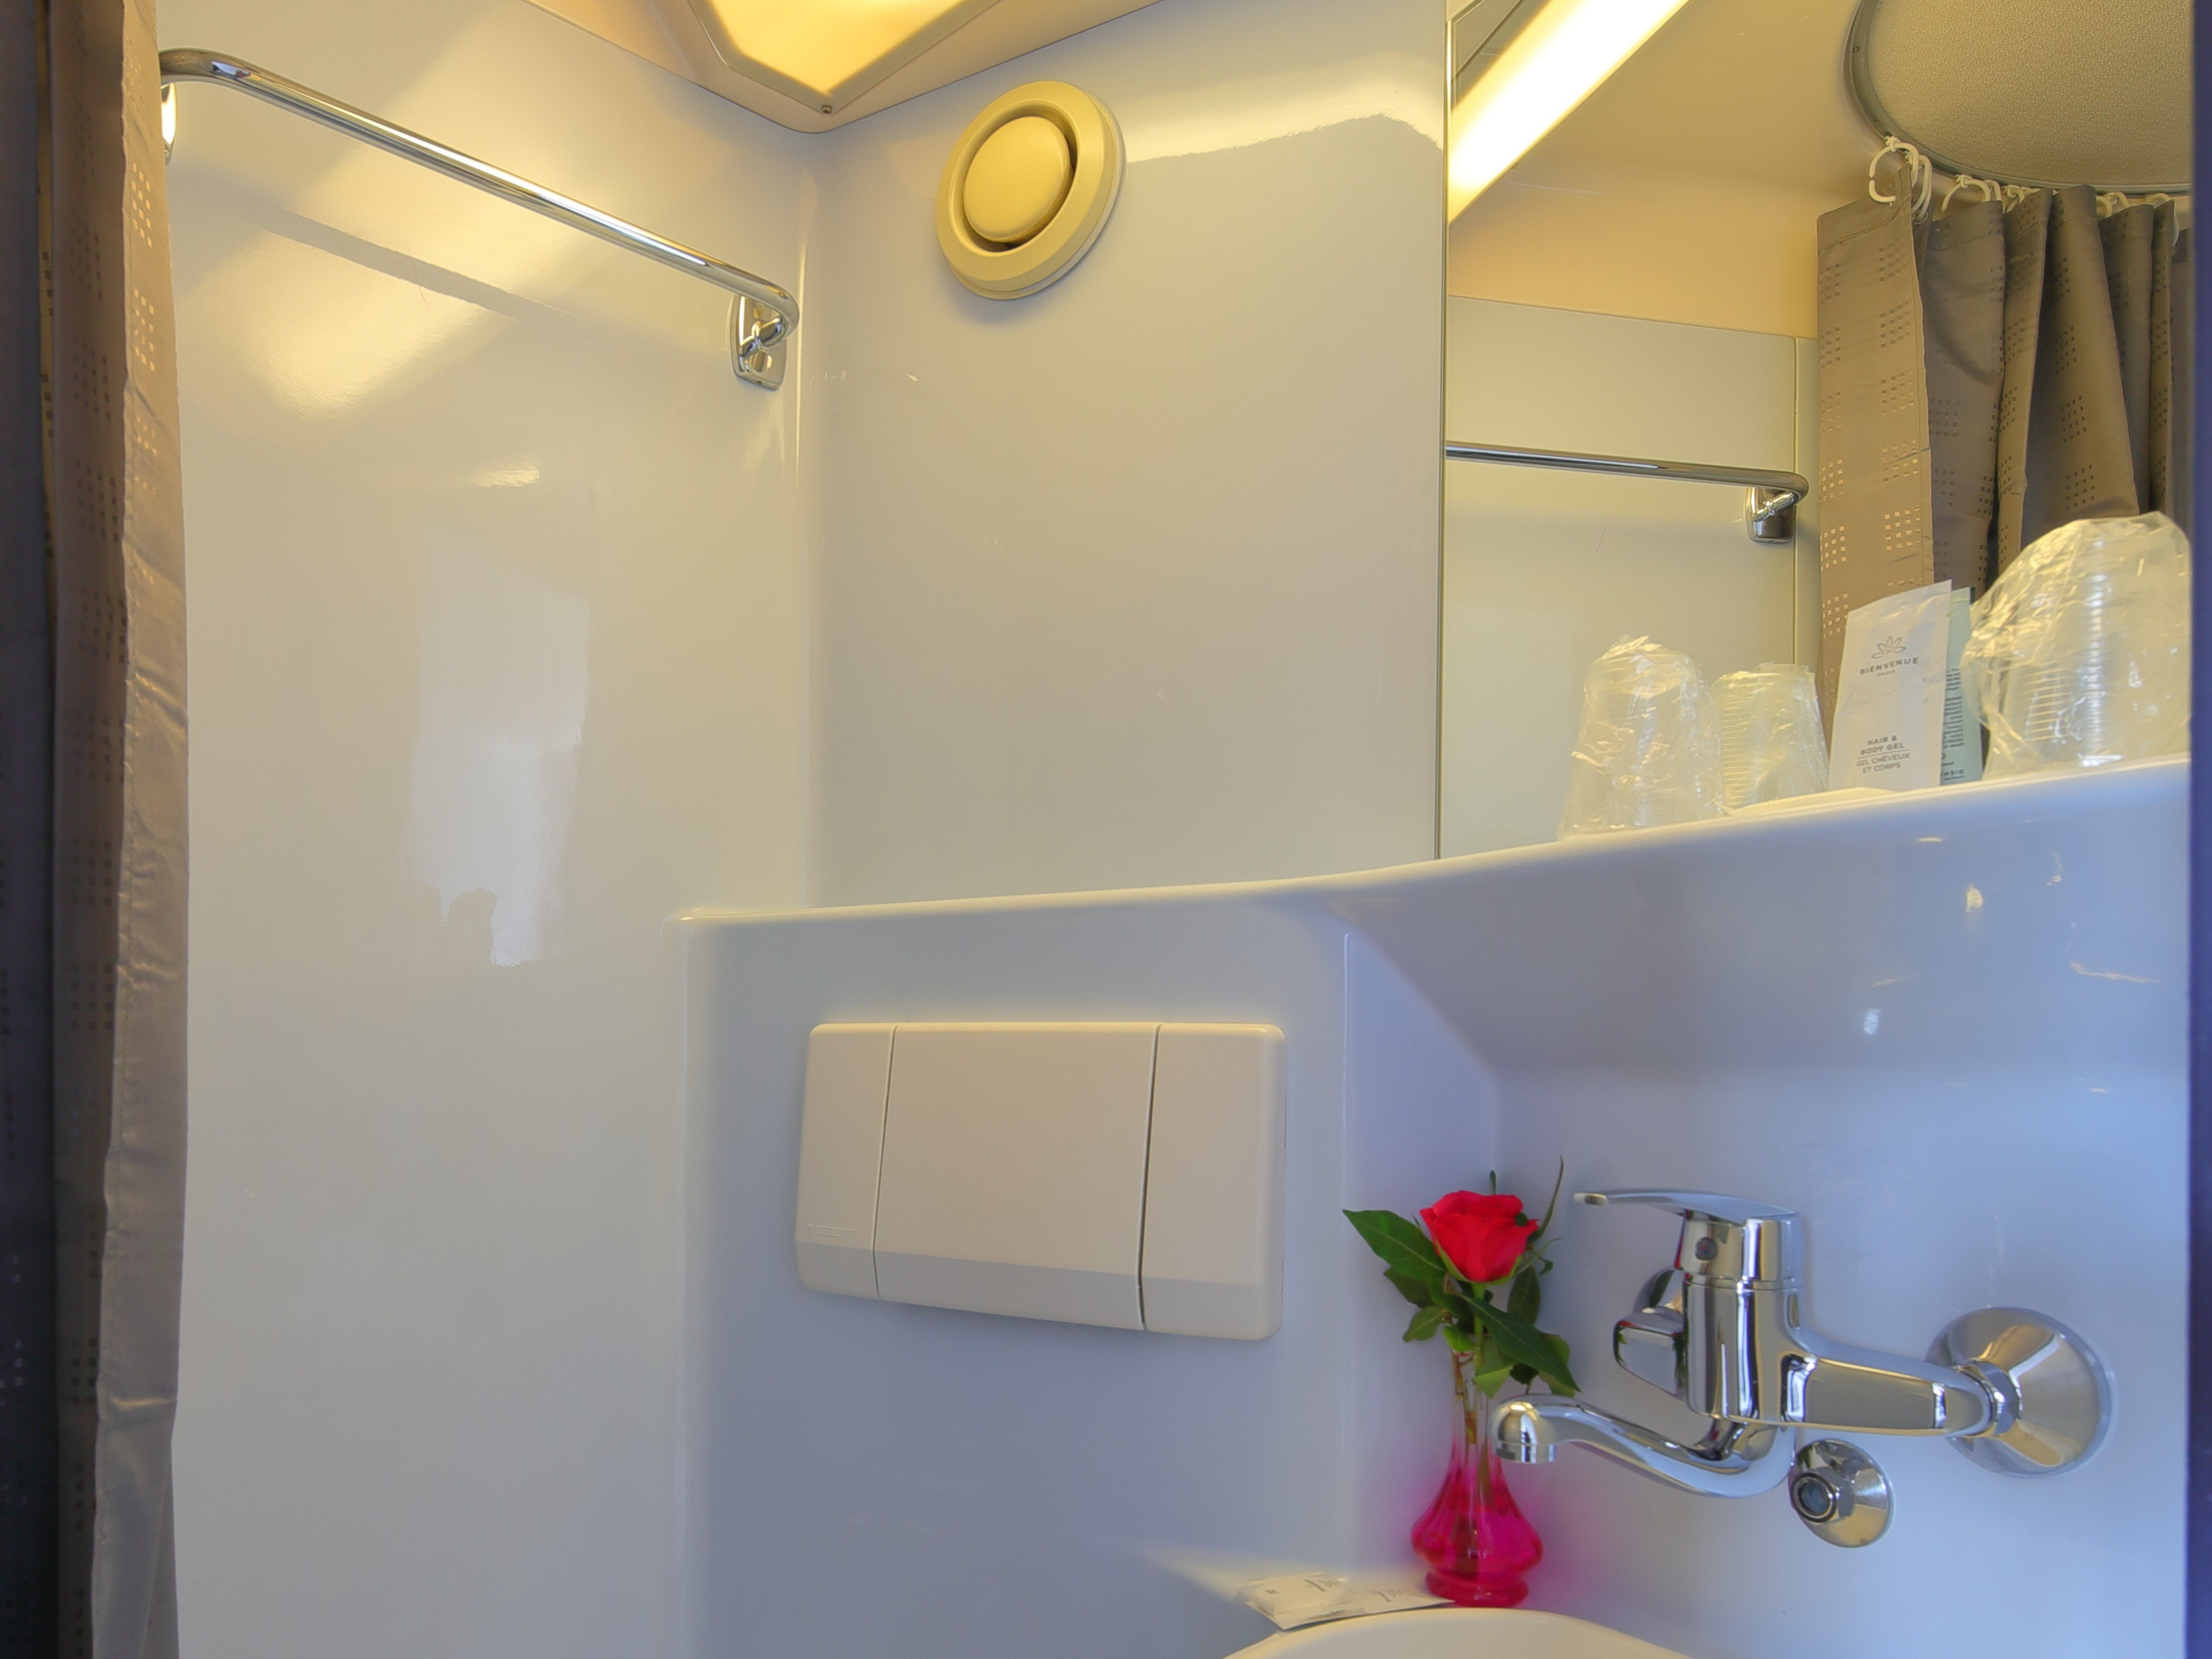 hotel-paris-13-avec-parking-lavabo-miroir